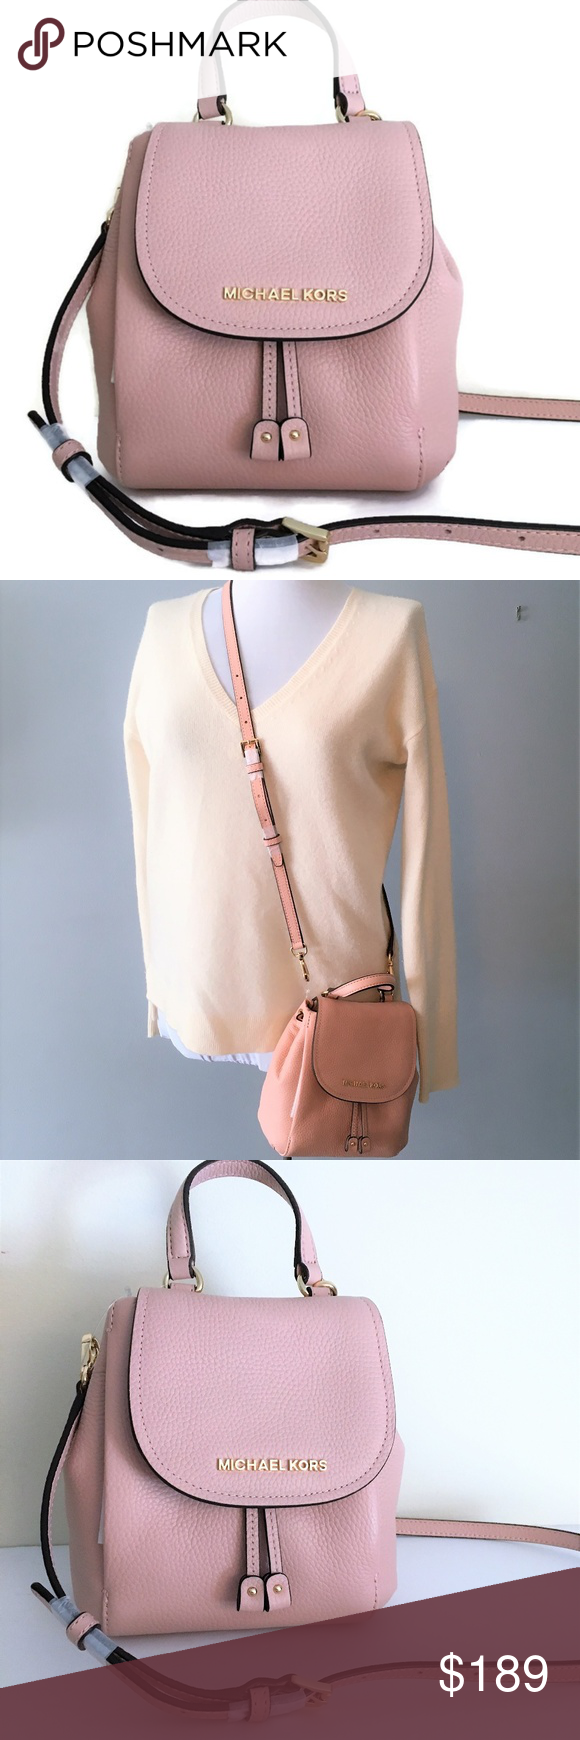 8f0f1592a860b Michael Kors Riley Small Flap Pack ~ Pink Leather This gorgeous Riley Pack  Crossbody from Michael